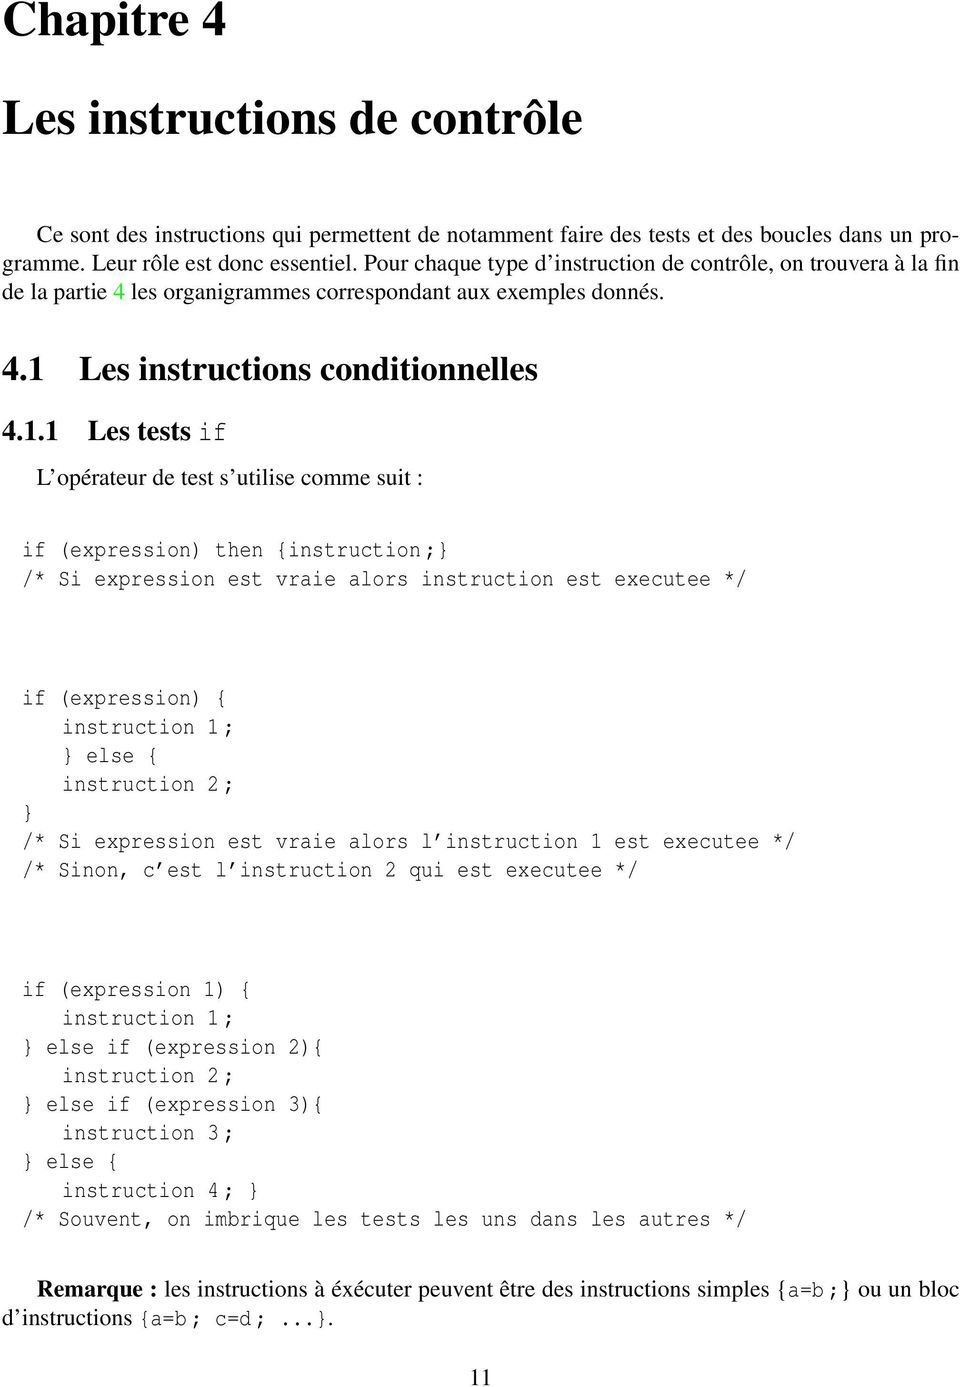 Les instructions conditionnelles 4.1.